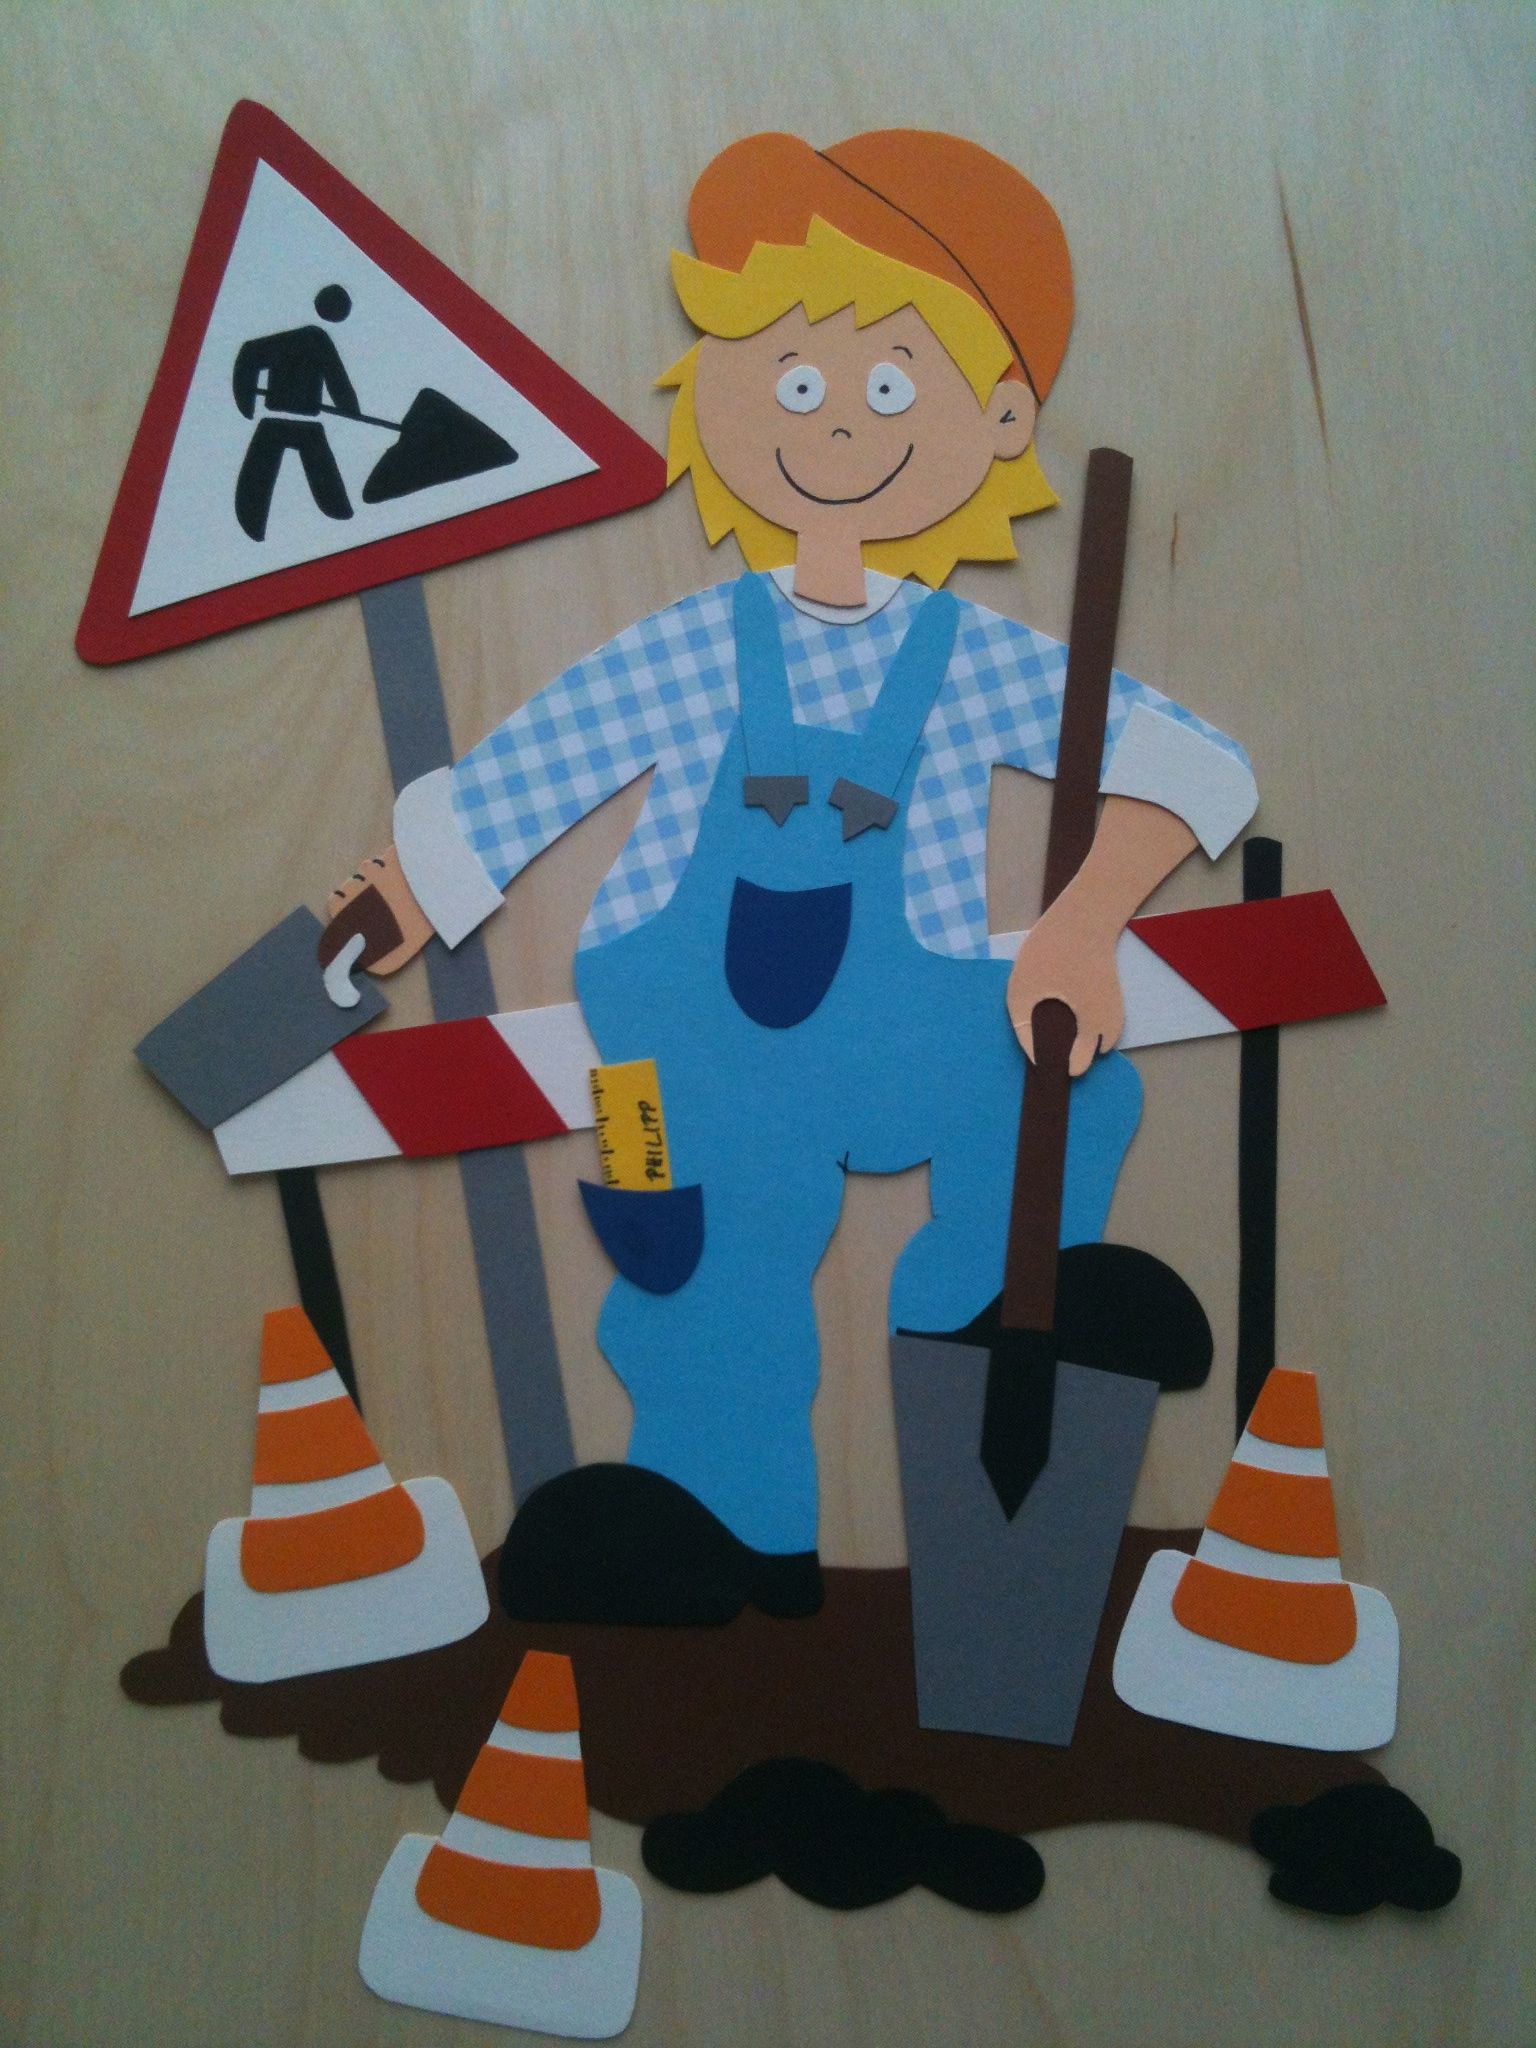 Decoration For Boys Road Works Paper Crafts - Basteln Mit Jungs Ab 7